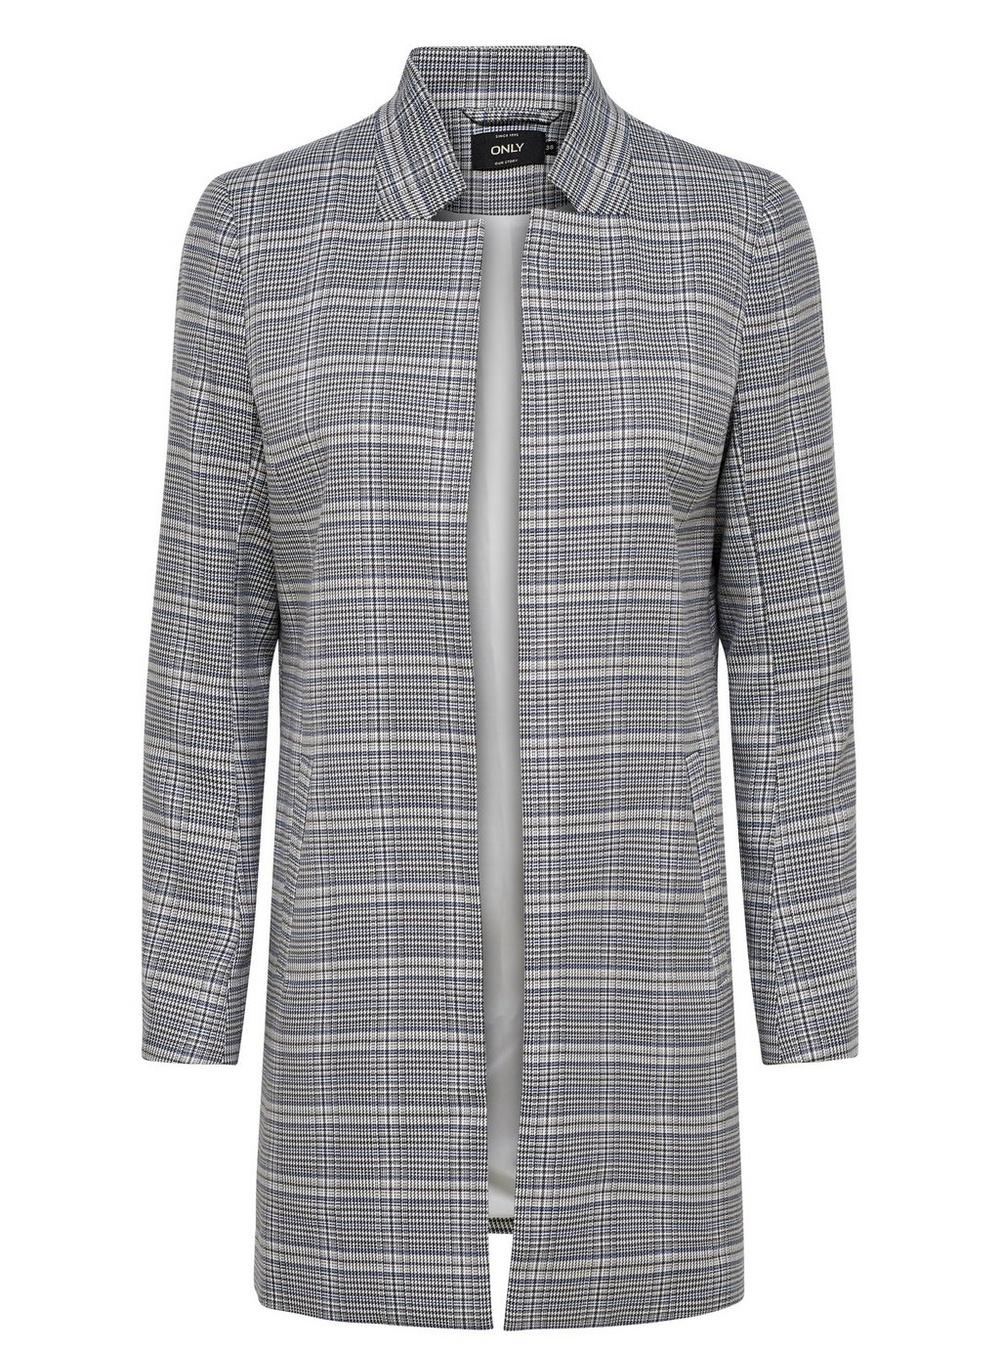 5b379283e11 Lyst - Dorothy Perkins Only Grey Longline Rib Textured Jacket in Gray